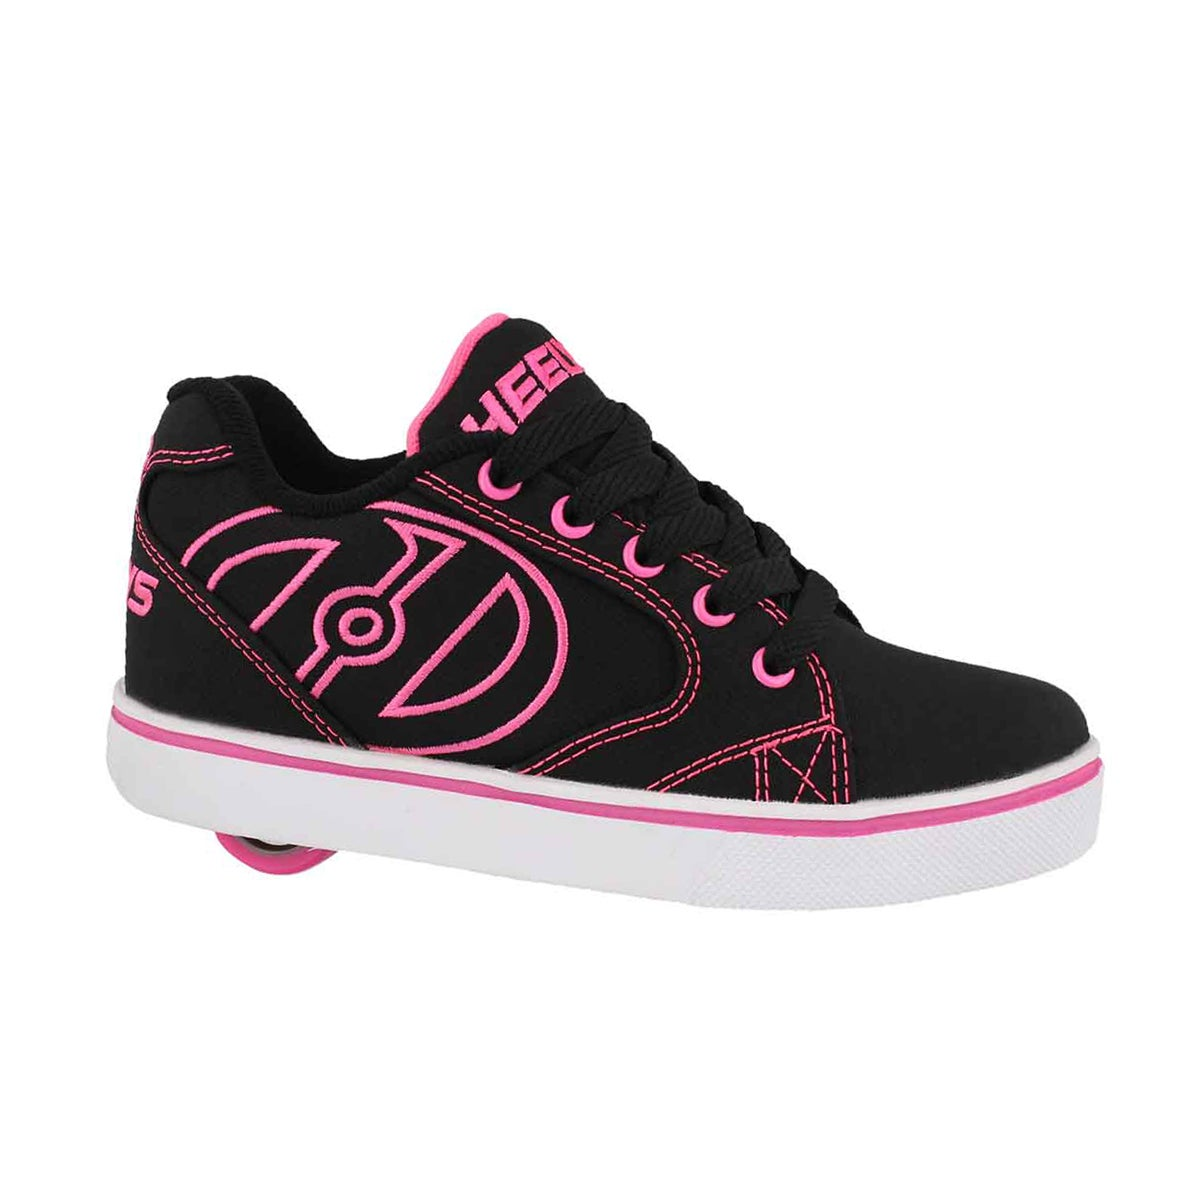 Girls' VOPEL blk/pnk/wht skate sneakers